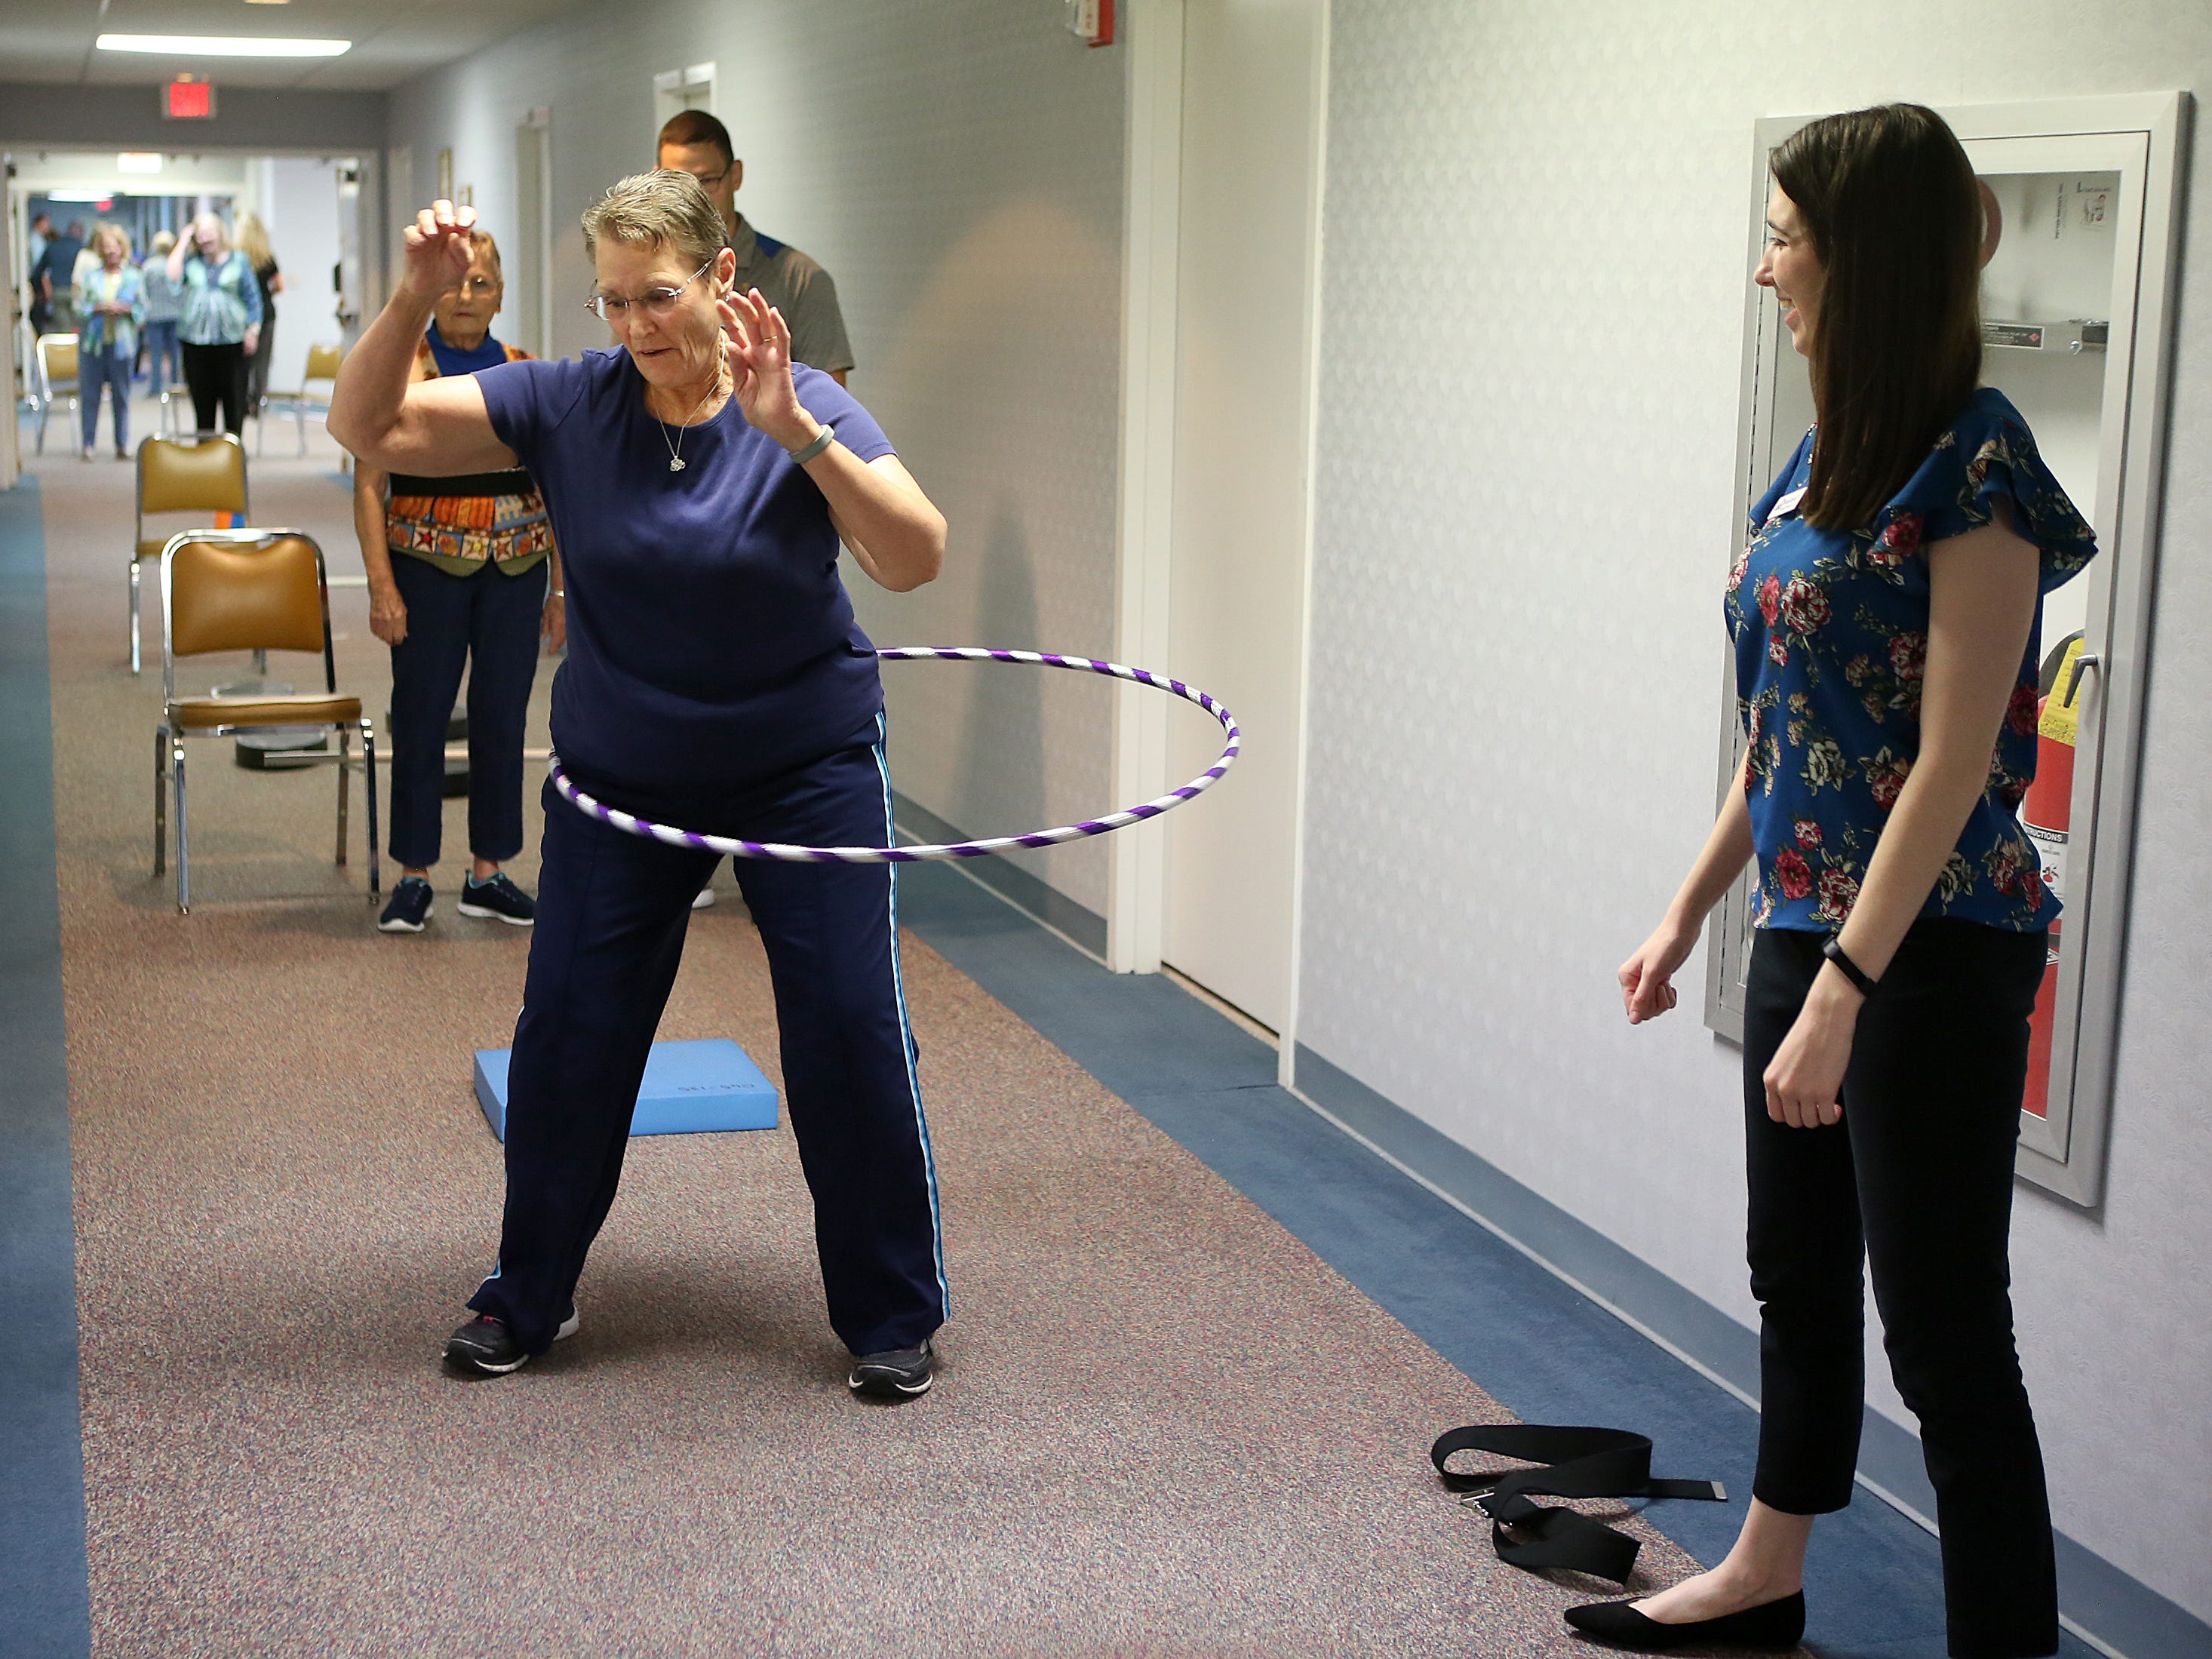 Resident Francis Evans participate in an activity designed by Angelo State University physical therapy students during a Balance and Fall Risk Reduction Program for seniors at Baptist Retirement Community Monday, Oct. 1, 2018.